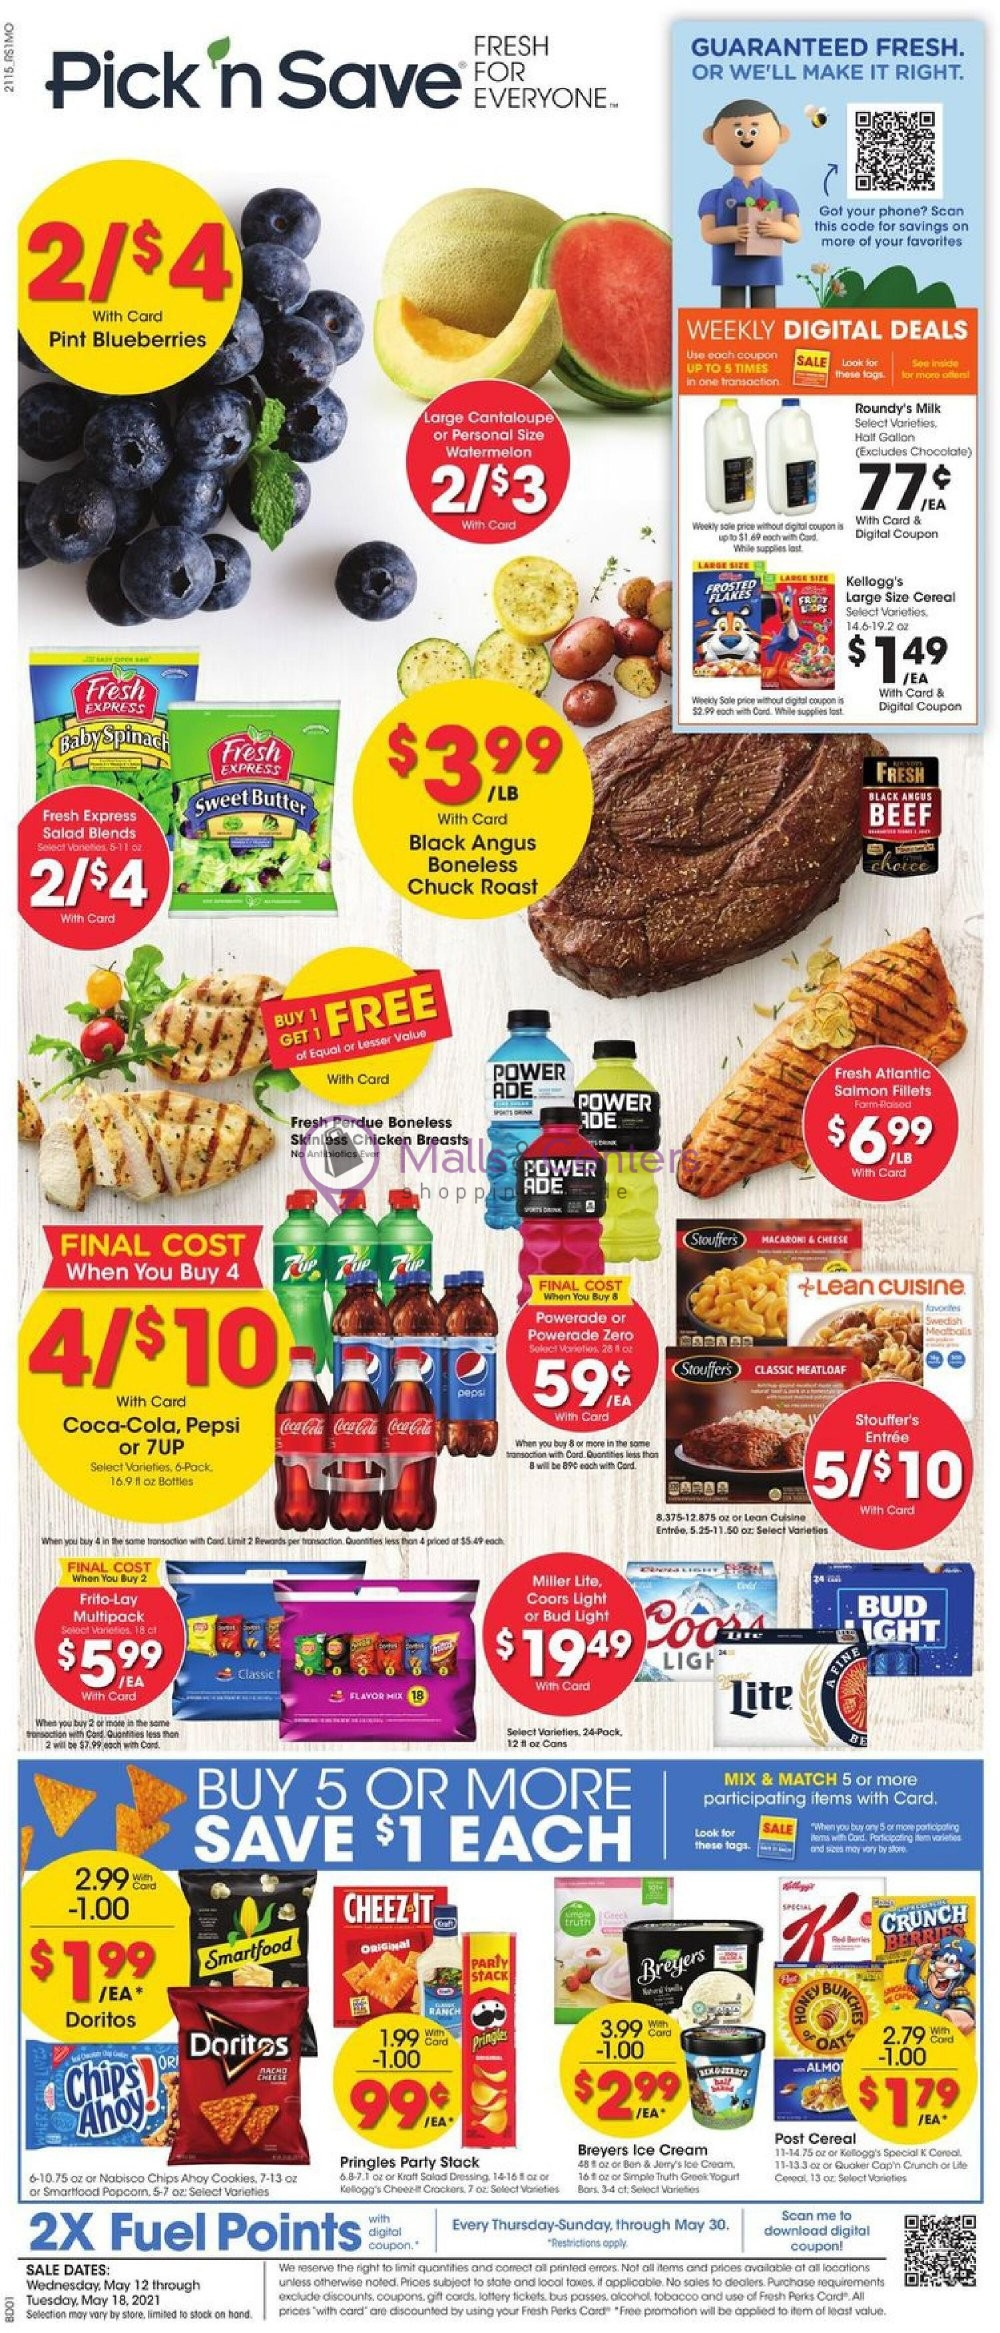 weekly ads Pick 'n Save - page 1 - mallscenters.com